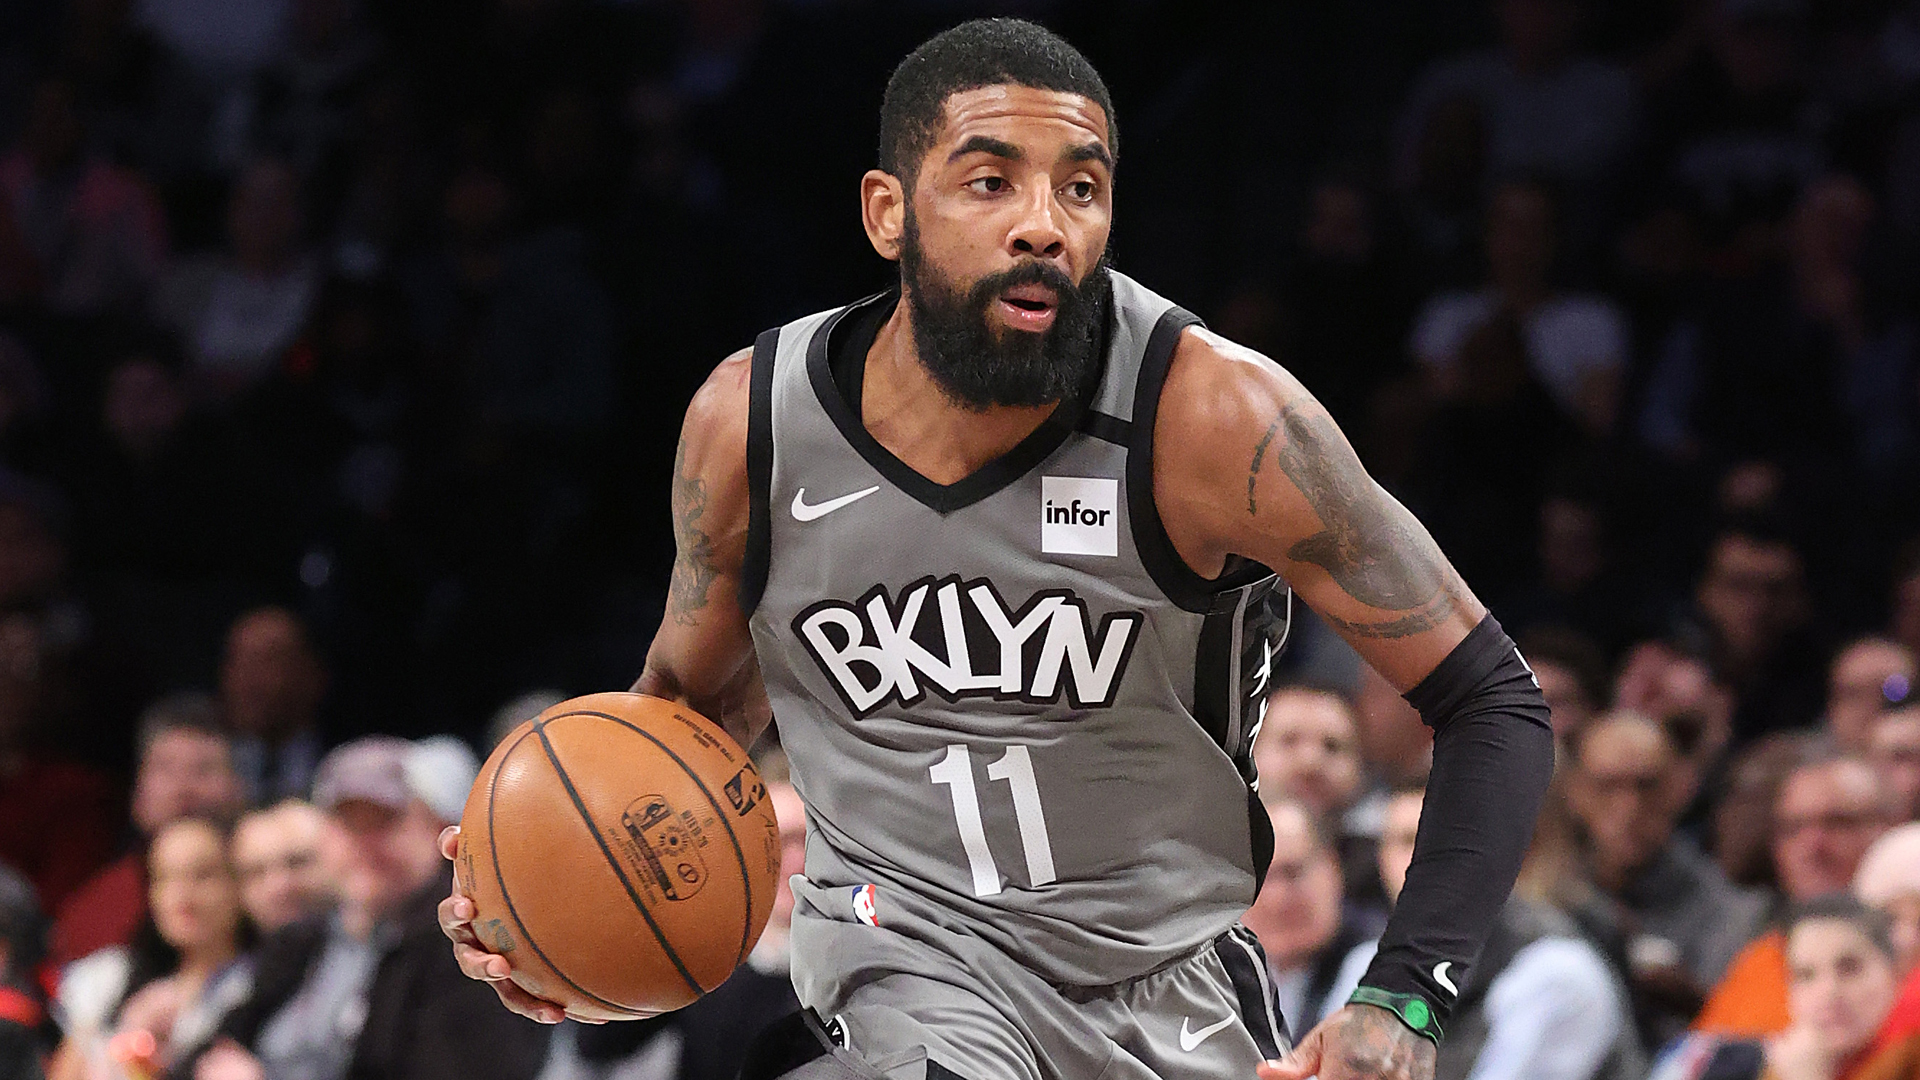 Irving to see another specialist due to shoulder injury